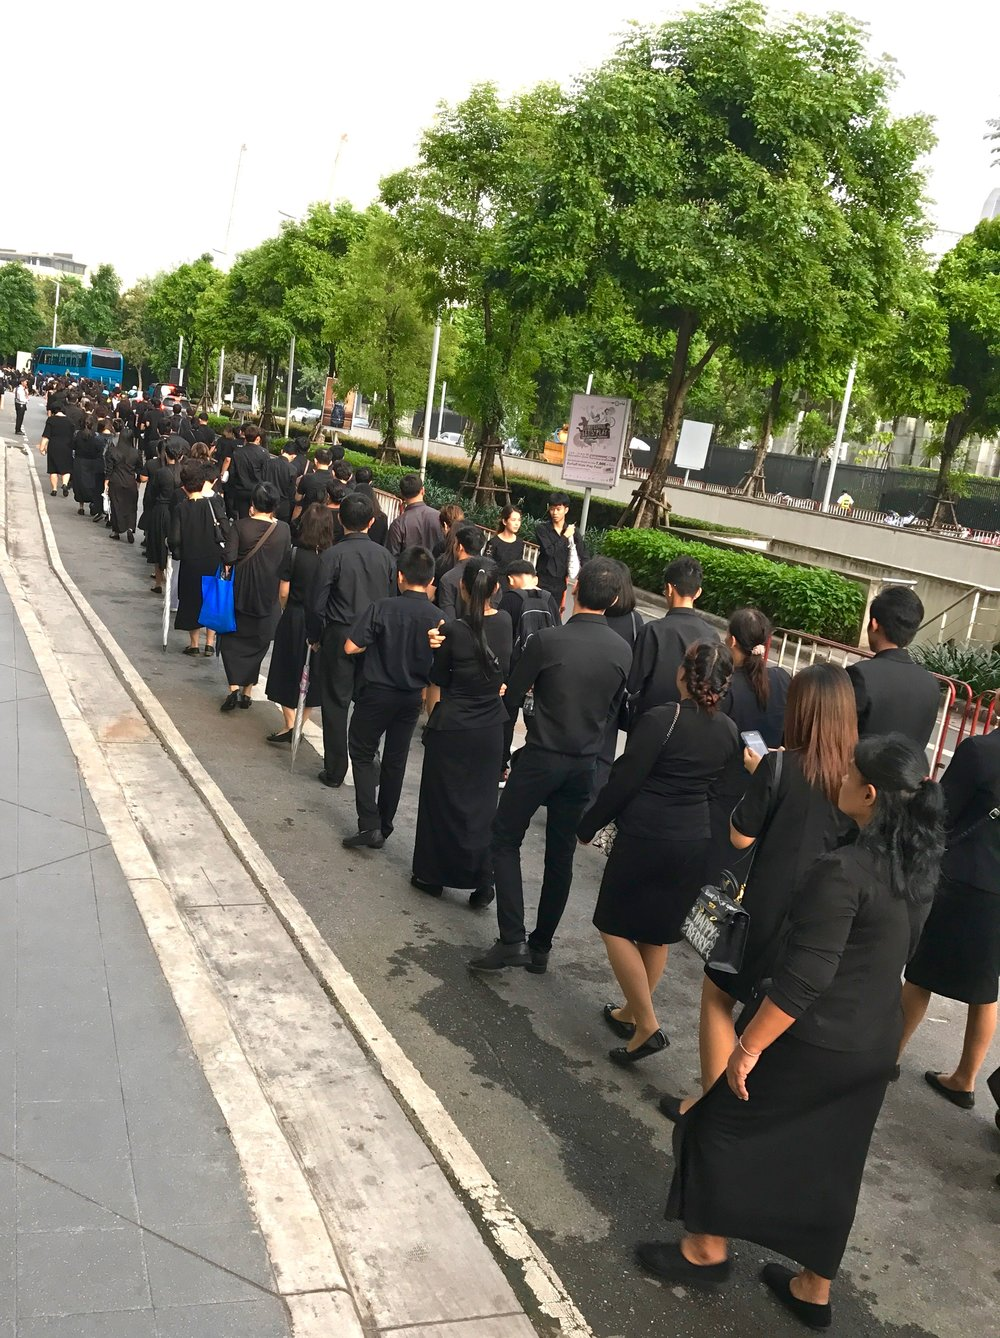 Thousands of Thai mourners line up here in the Ratchaprasong District for the opportunity to offer sandalwood flowers in homage to the king.